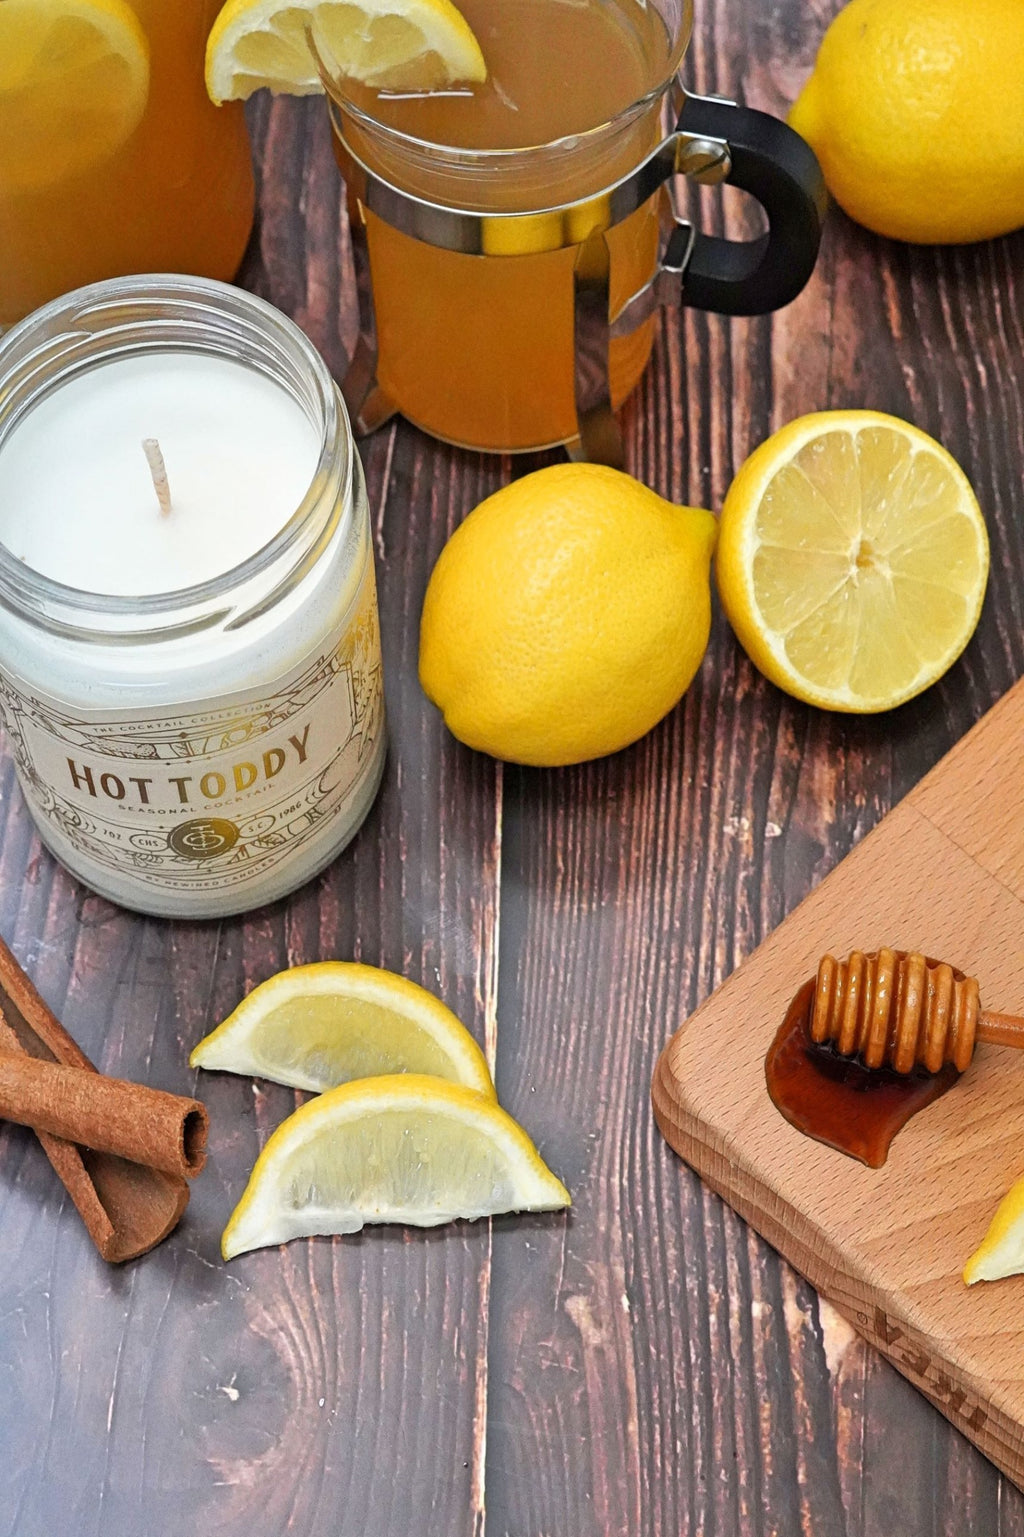 Hot Toddy (12 oz)